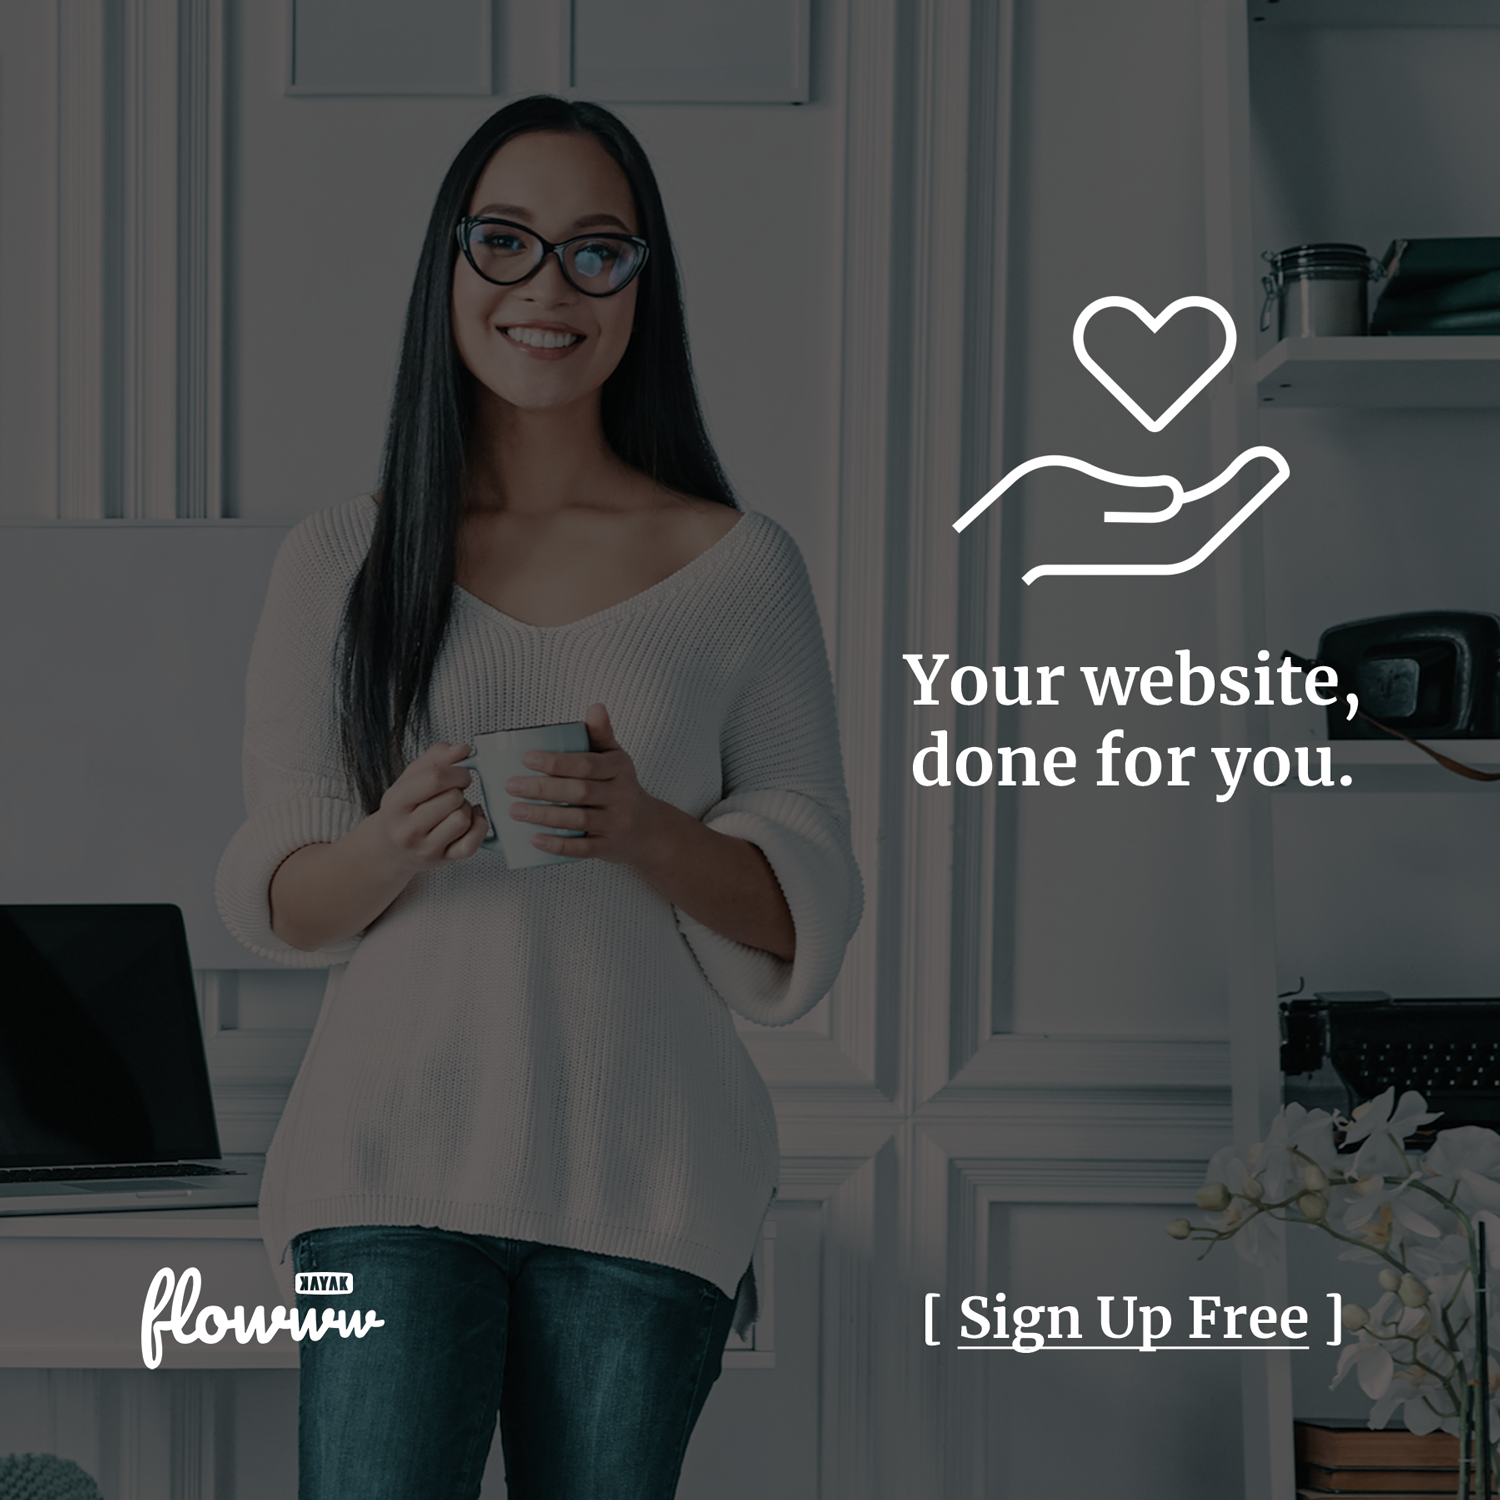 your website, done for you. sign up free.